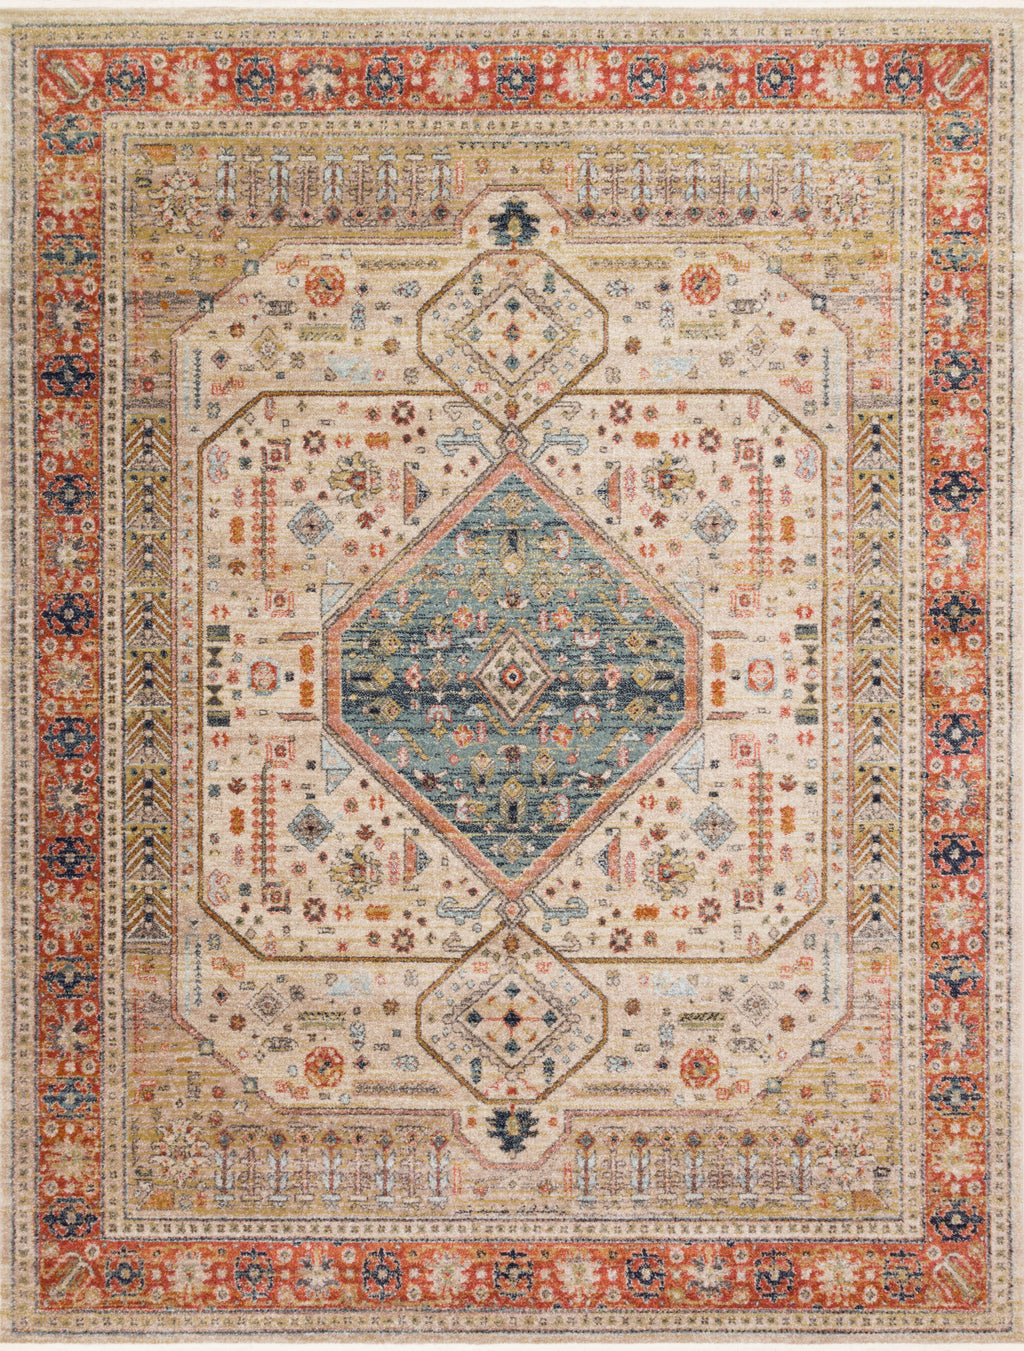 GRAHAM Collection Rug  in  PERSIMMON / ANT.IVORY Orange Accent Power-Loomed Polypropylene